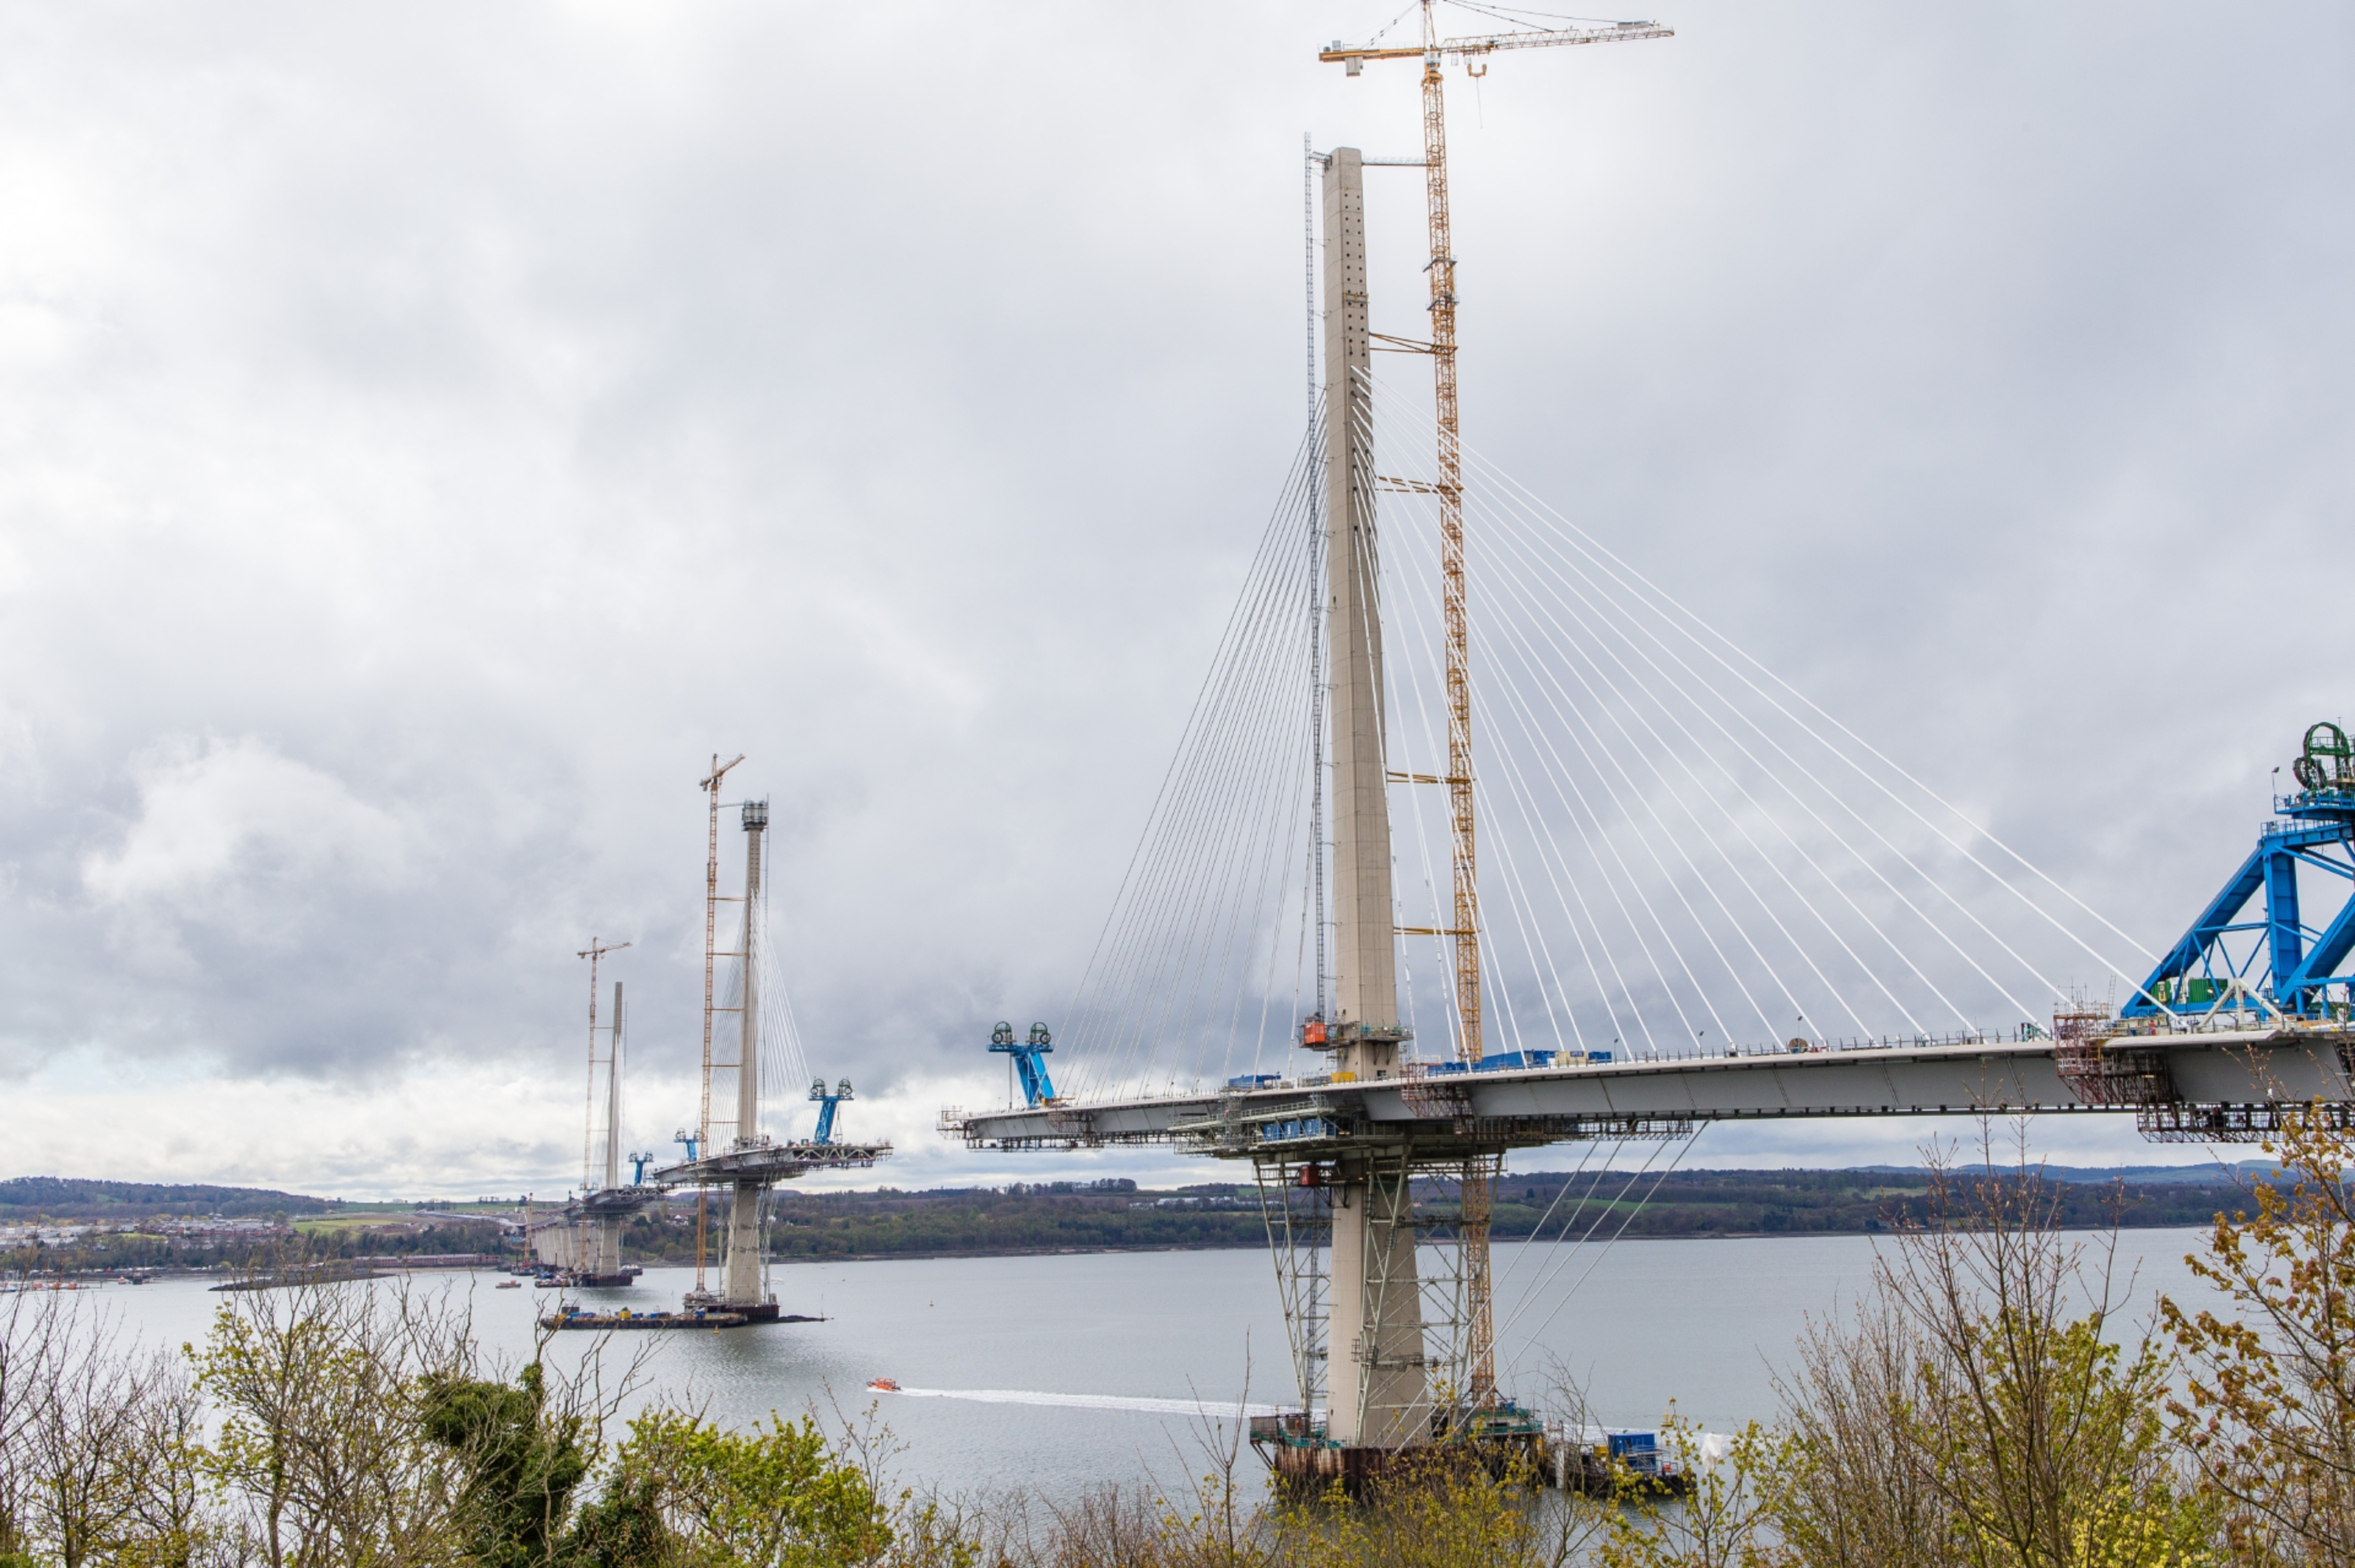 North tower of the Queensferry Crossing where the fatal accident occurred